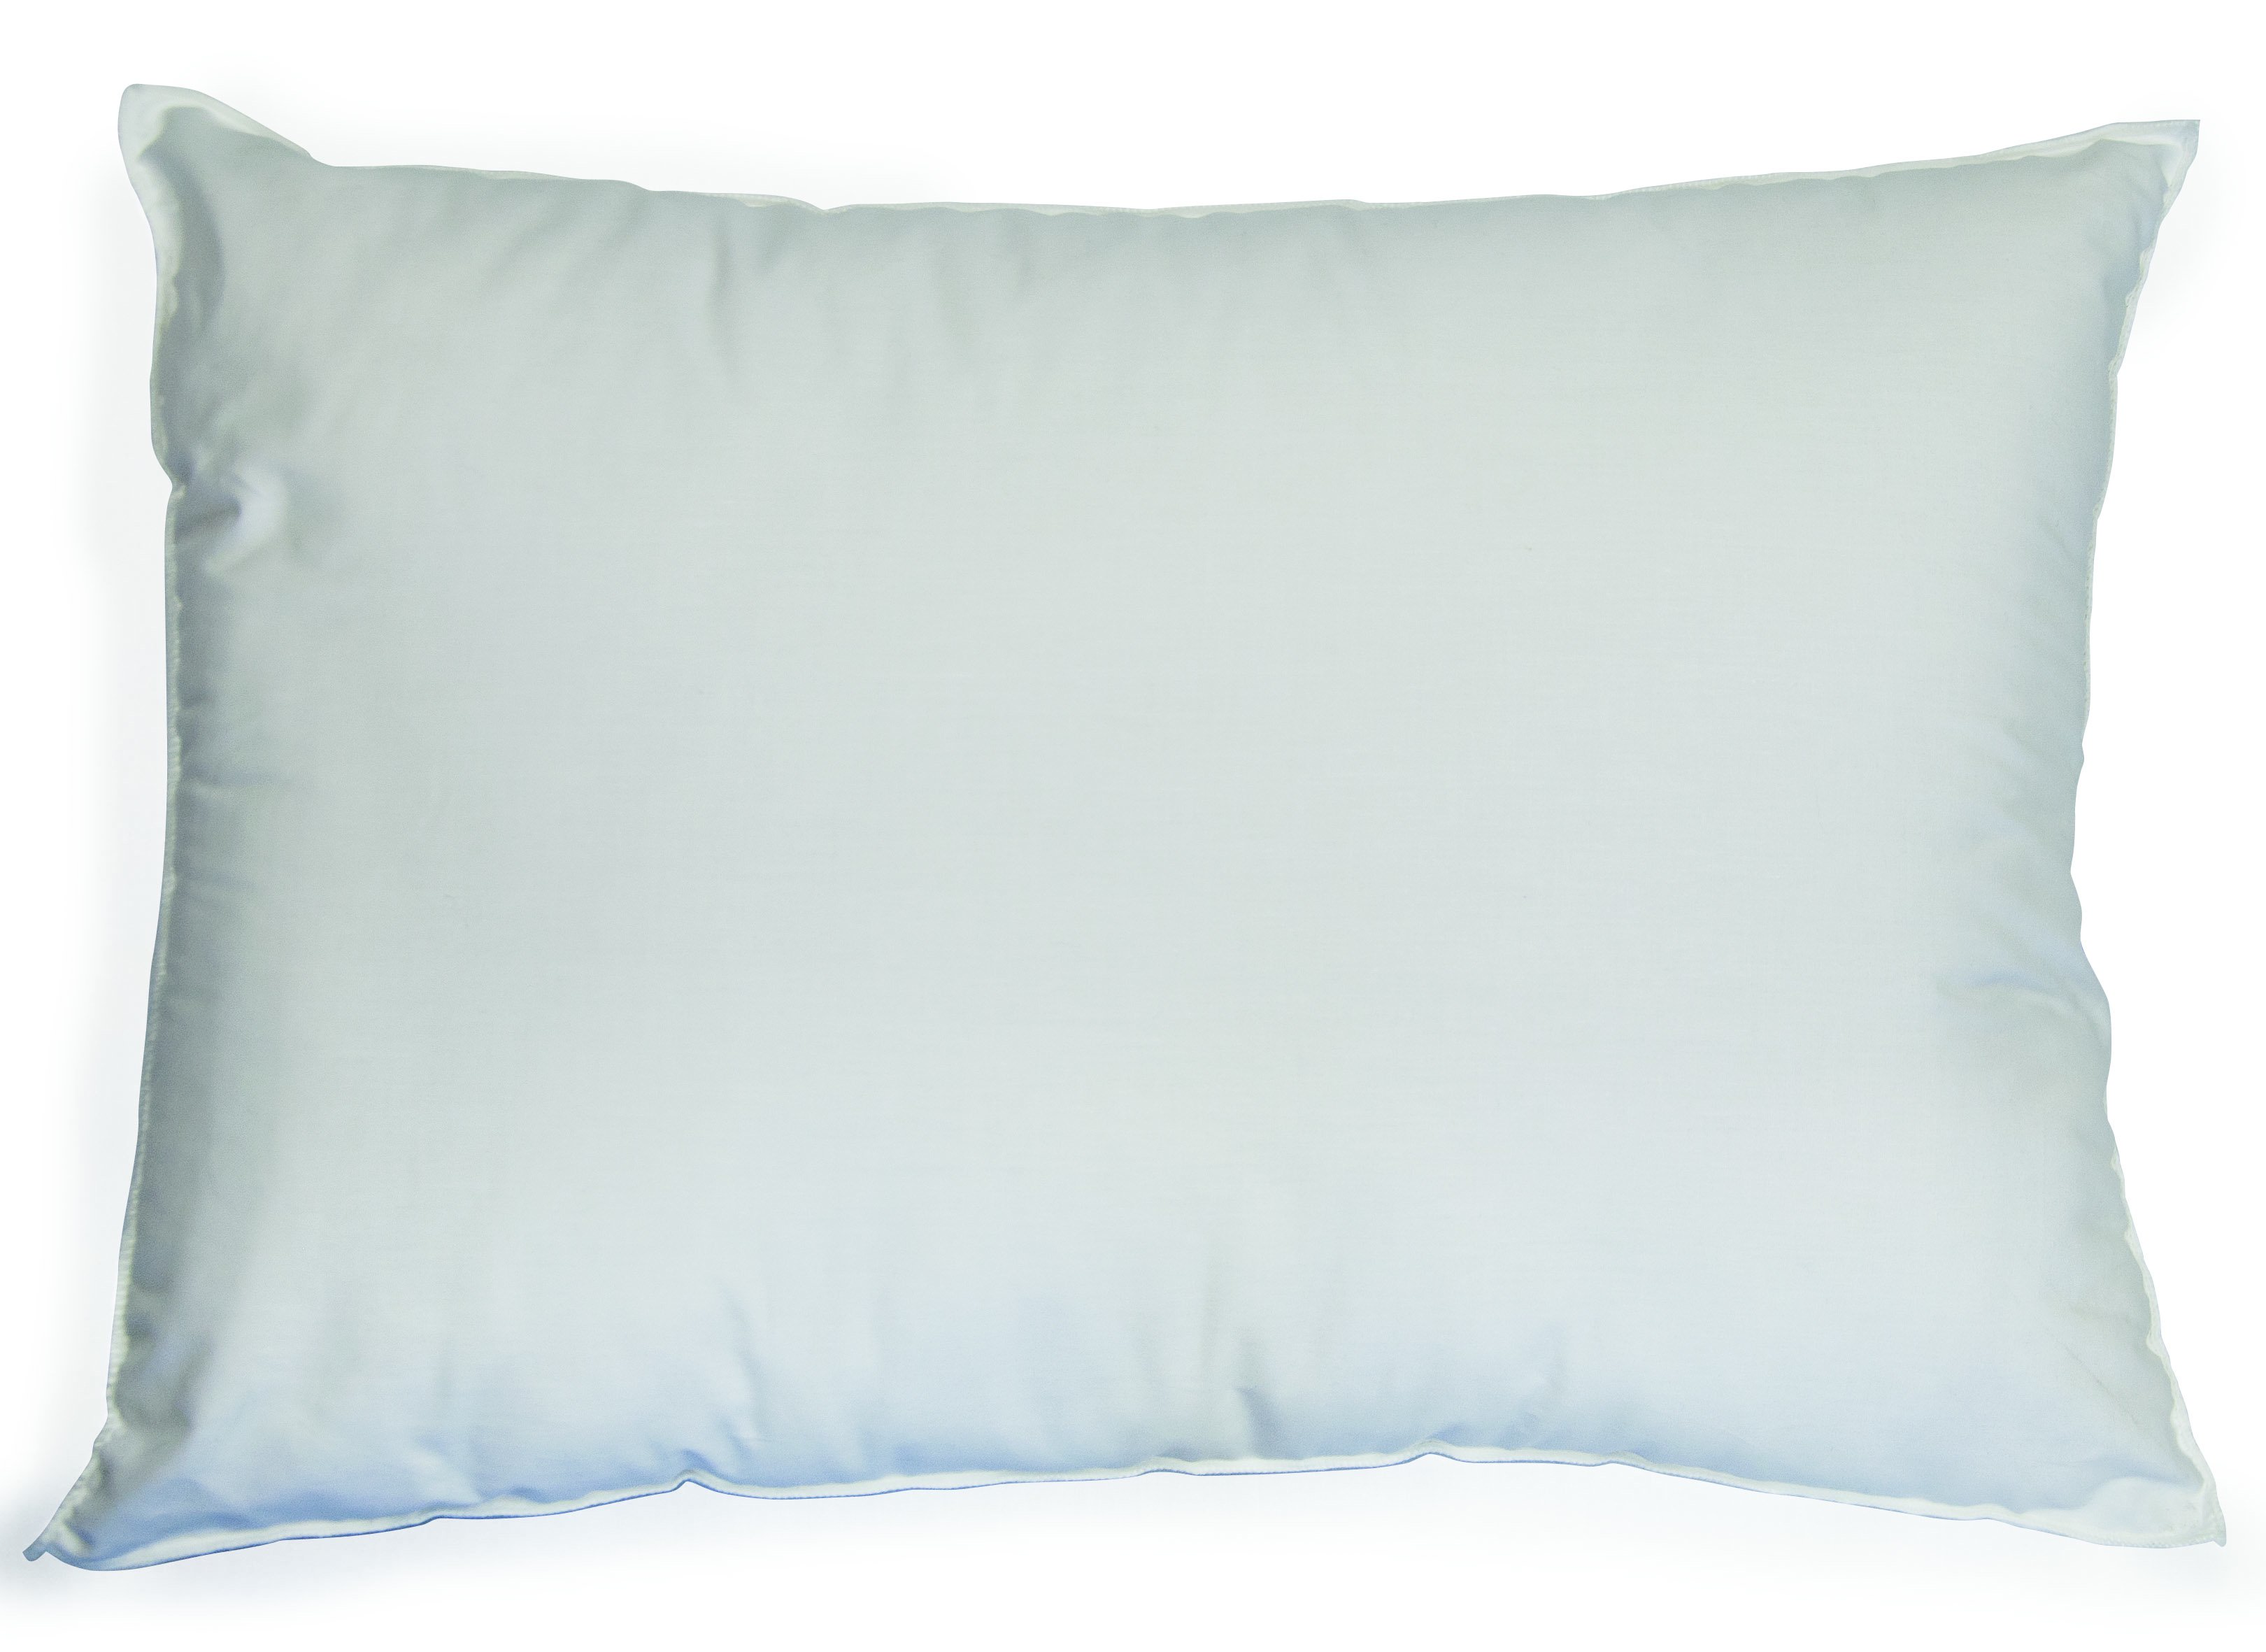 Bed Pillow, McKesson, 20 X 26 Inch White Disposable, 41-2026-M - Case of 12